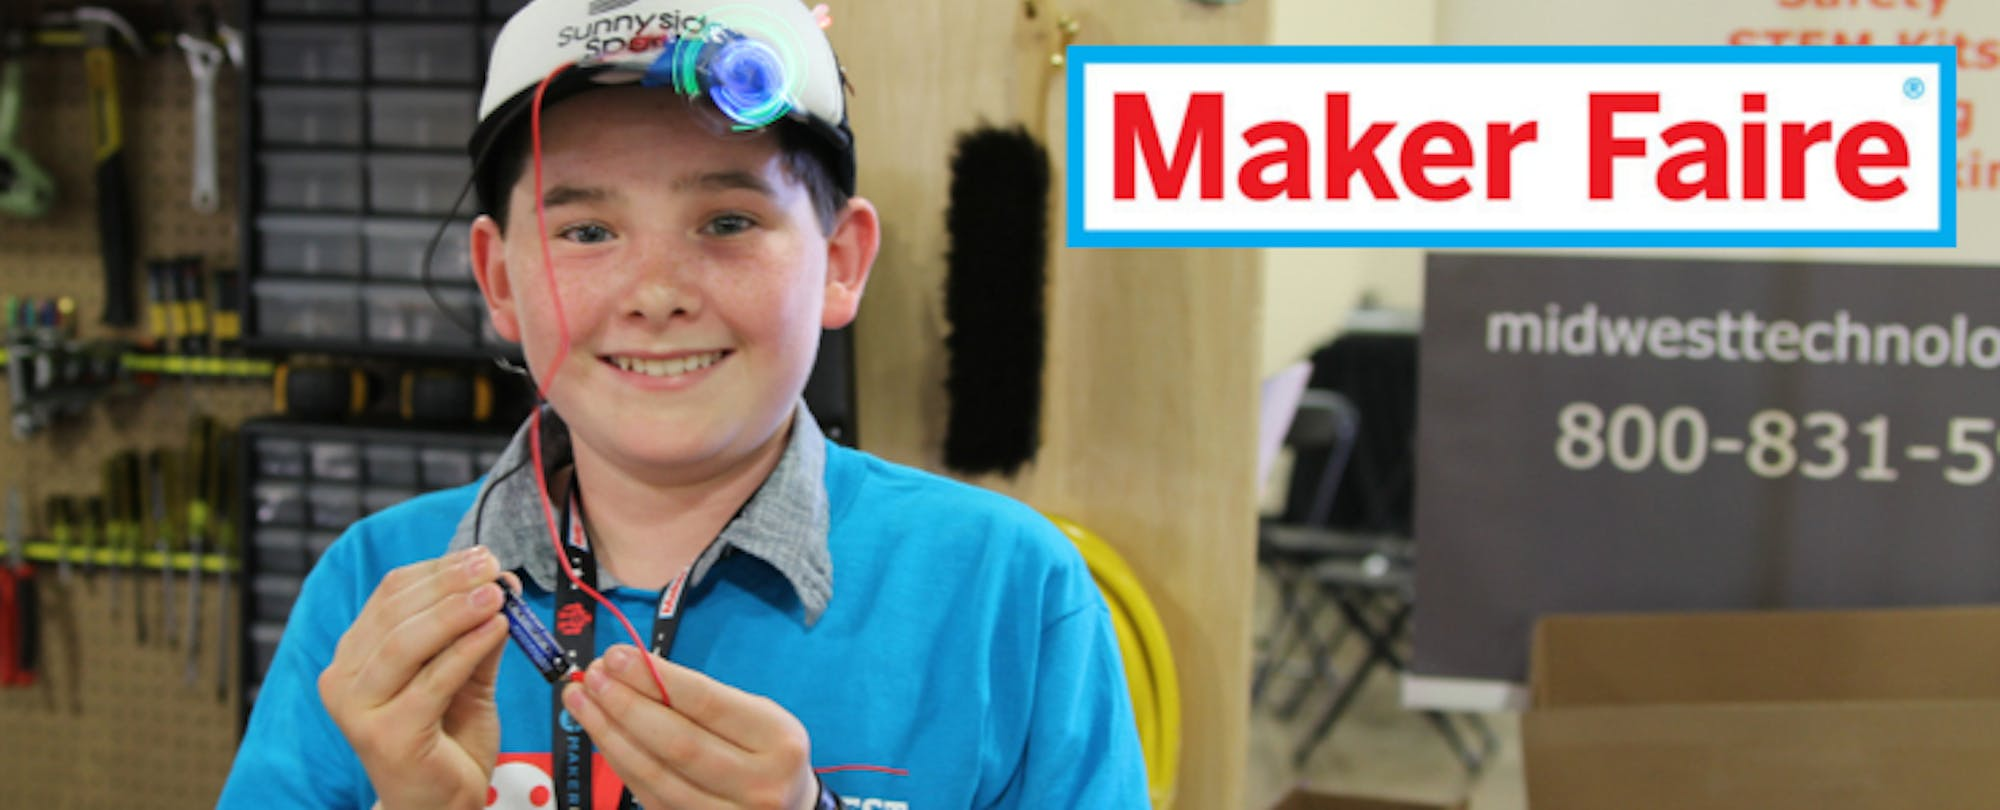 Just Make It! Maker Faire Fever This Weekend